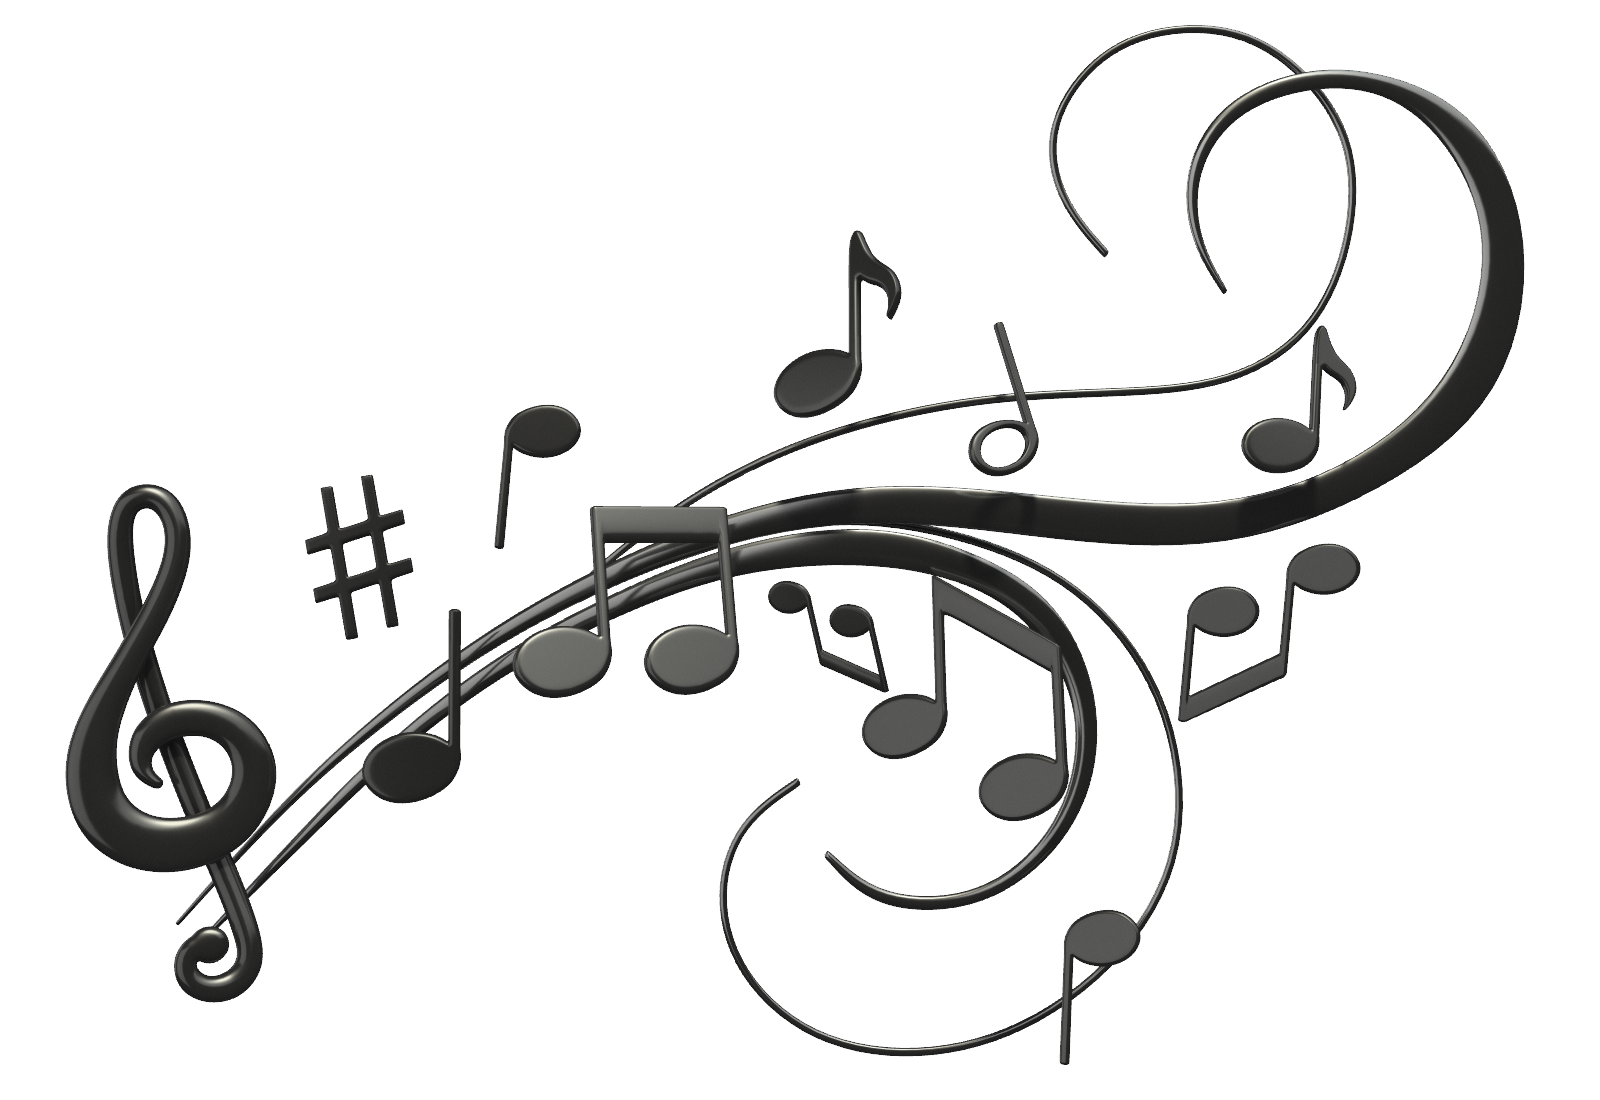 1600x1100 Music Notes Black And White Jazz Music Notes Clipart